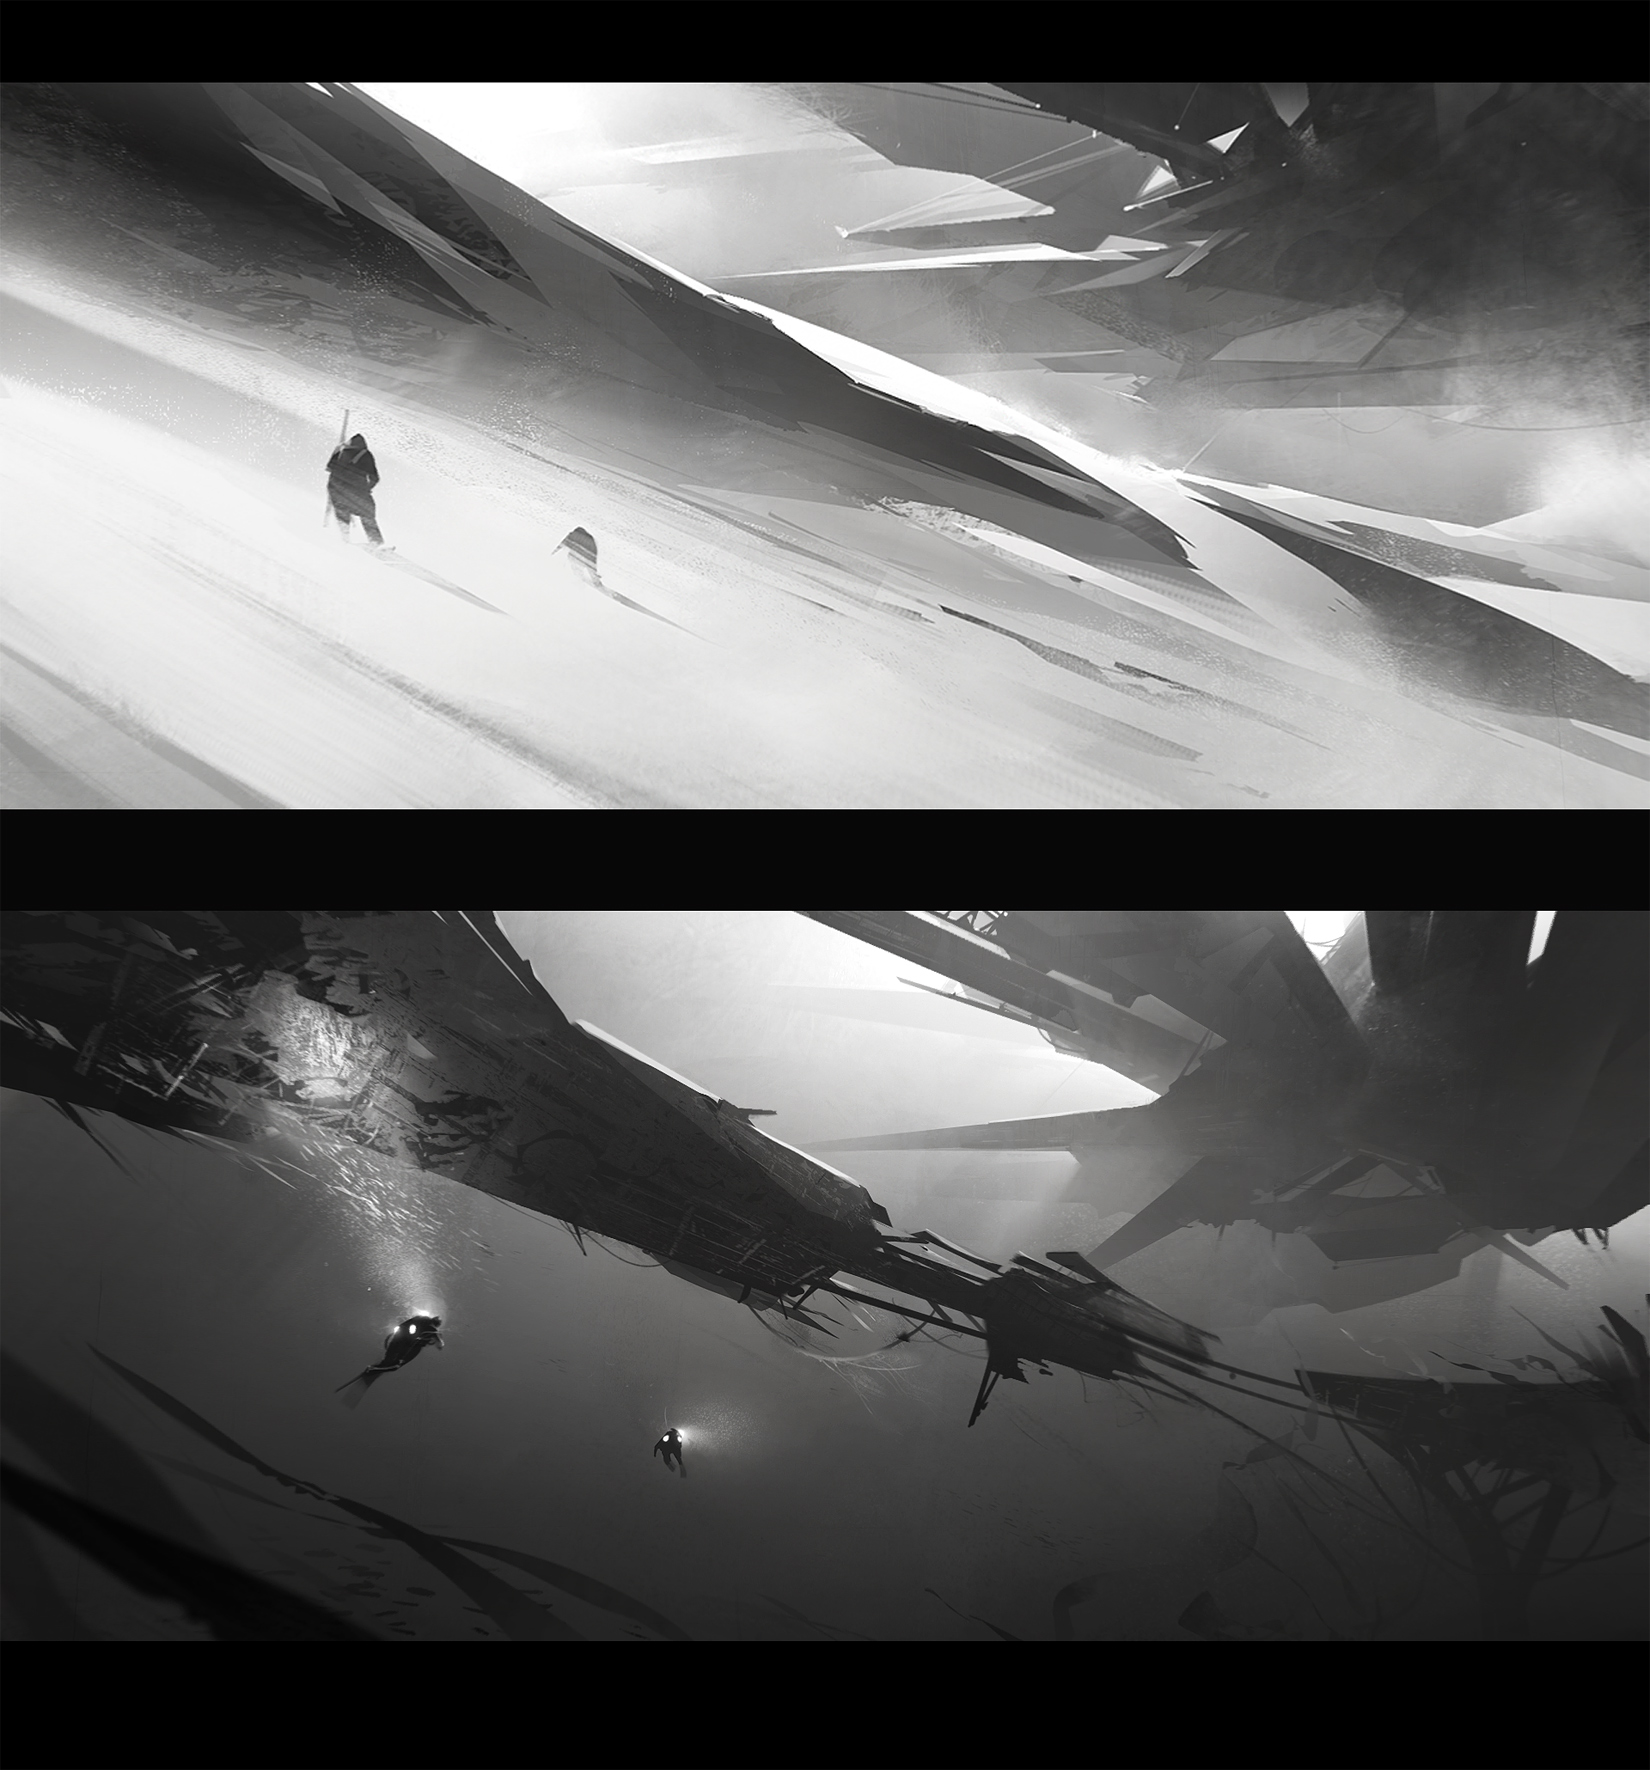 Composition studies by jamajurabaev